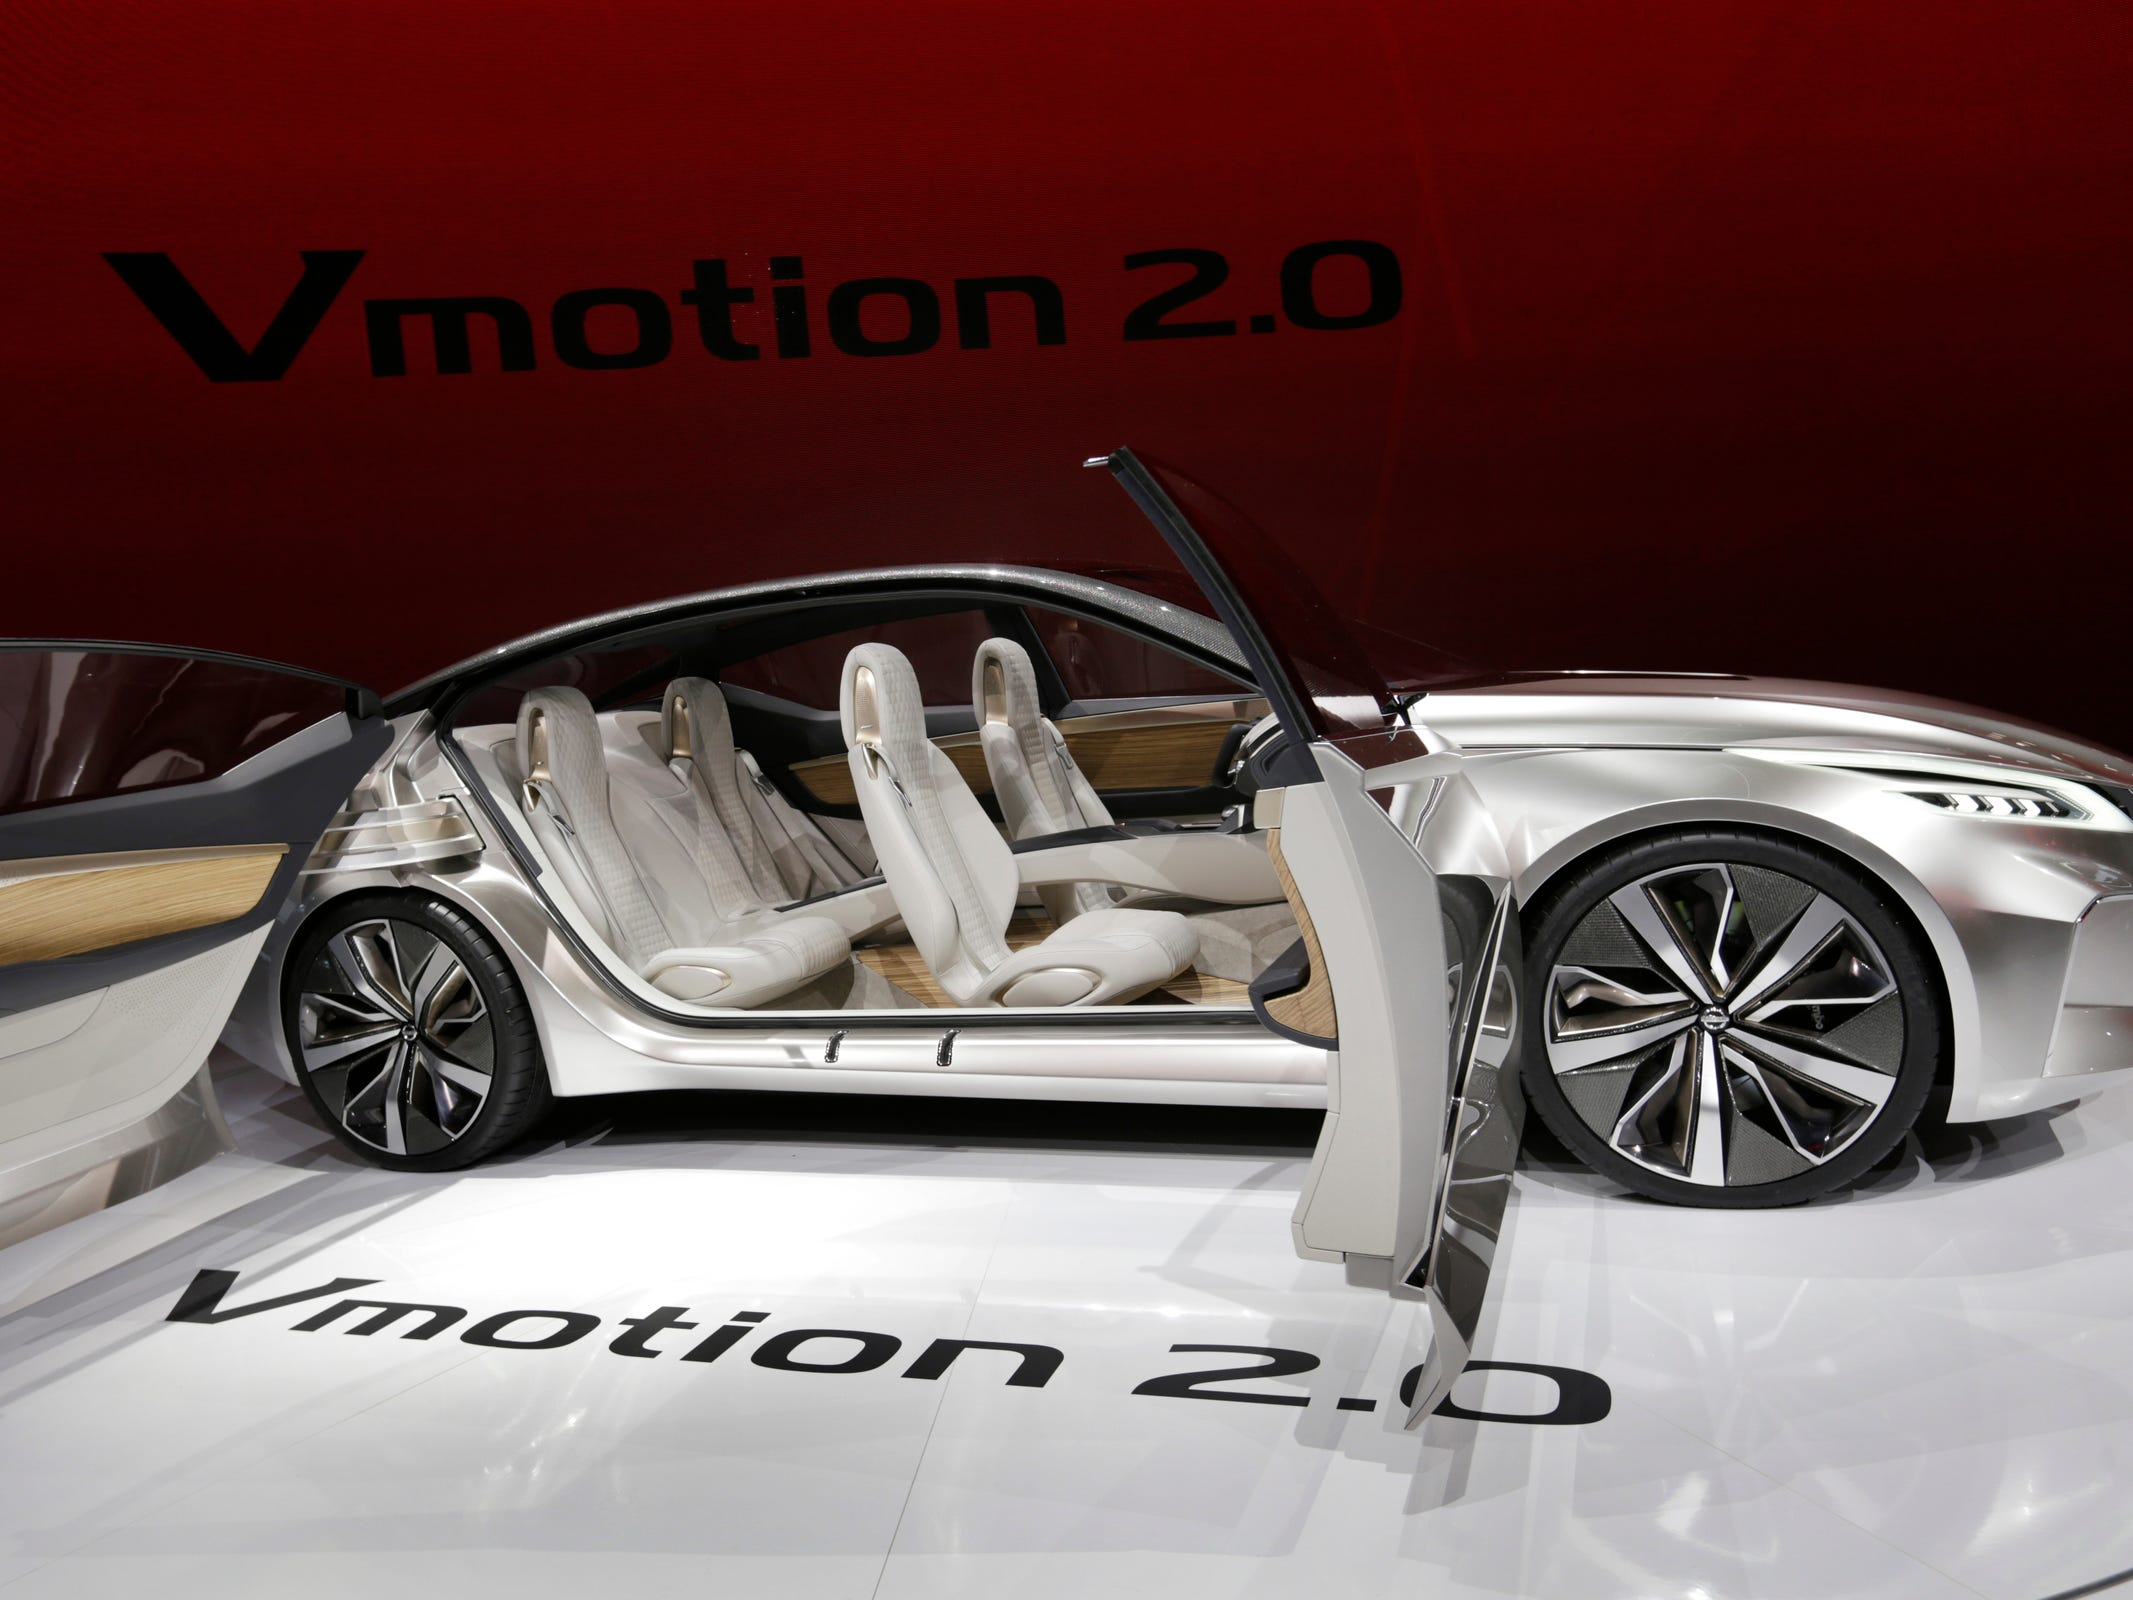 Nissan revealed the Vmotion 2.0 concept during the 2017 North American International Auto Show at Cobo Center in Detroit on Monday, Jan. 9, 2017.